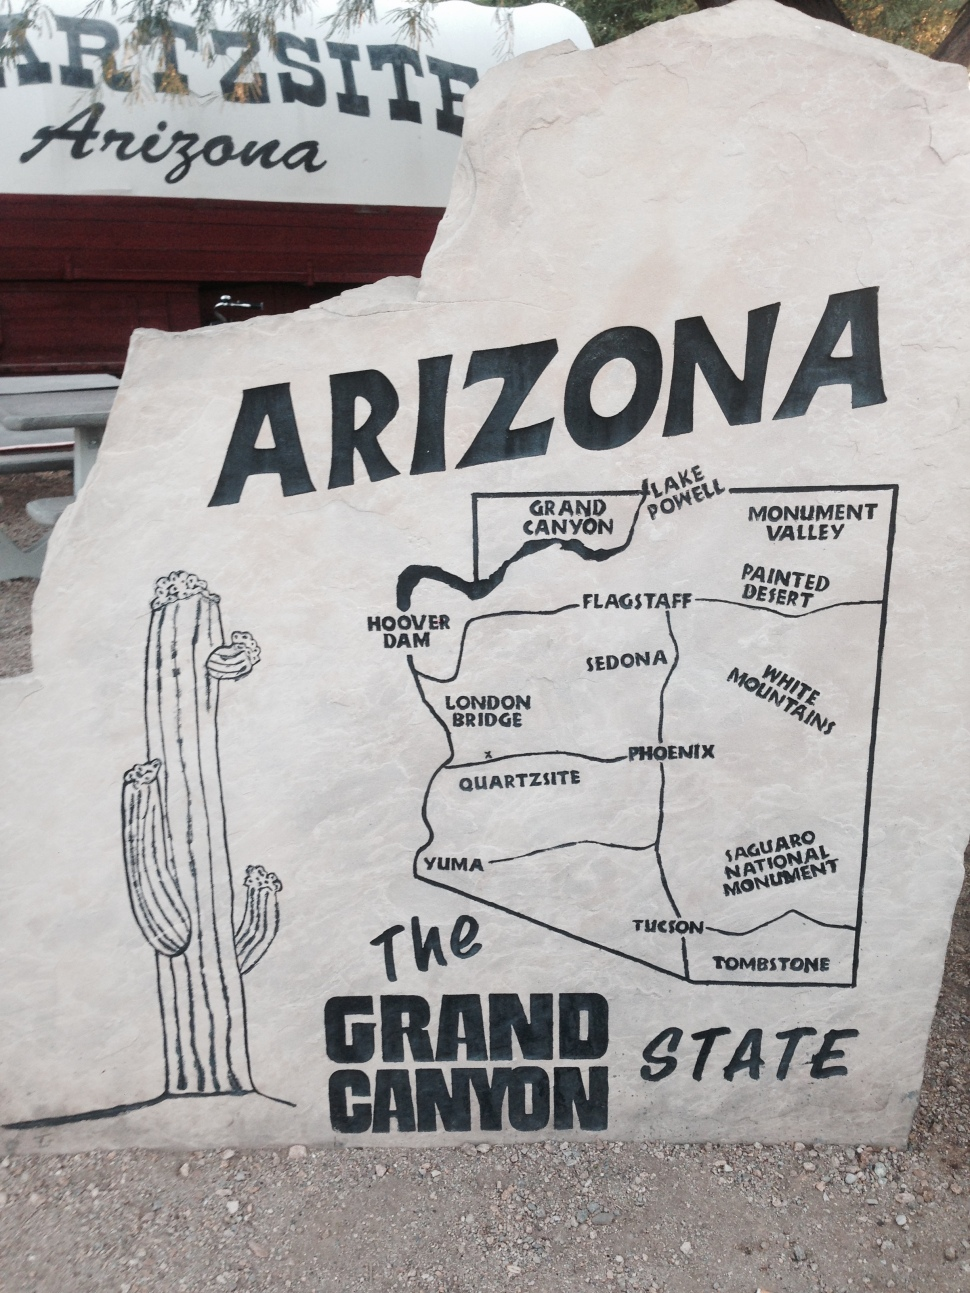 Arizona_marker_ShaikhWelcome